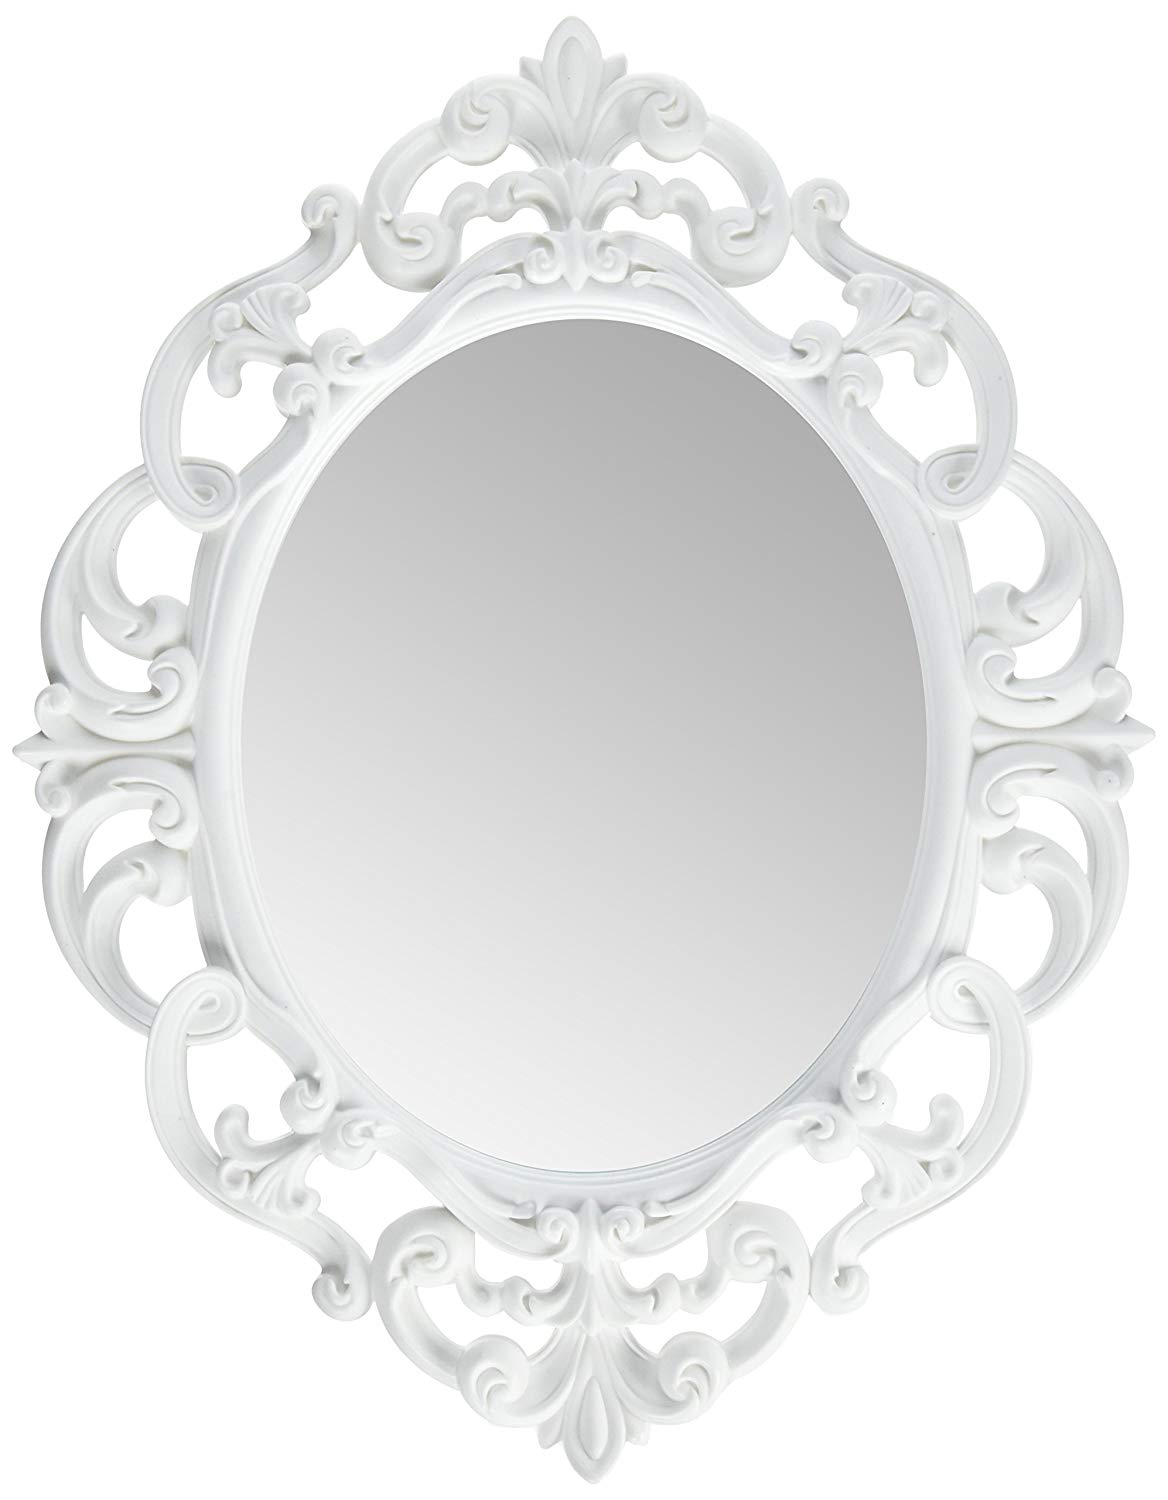 Retro Wall Mirrors Within Widely Used Kole White Oval Vintage Wall Mirror (View 14 of 20)